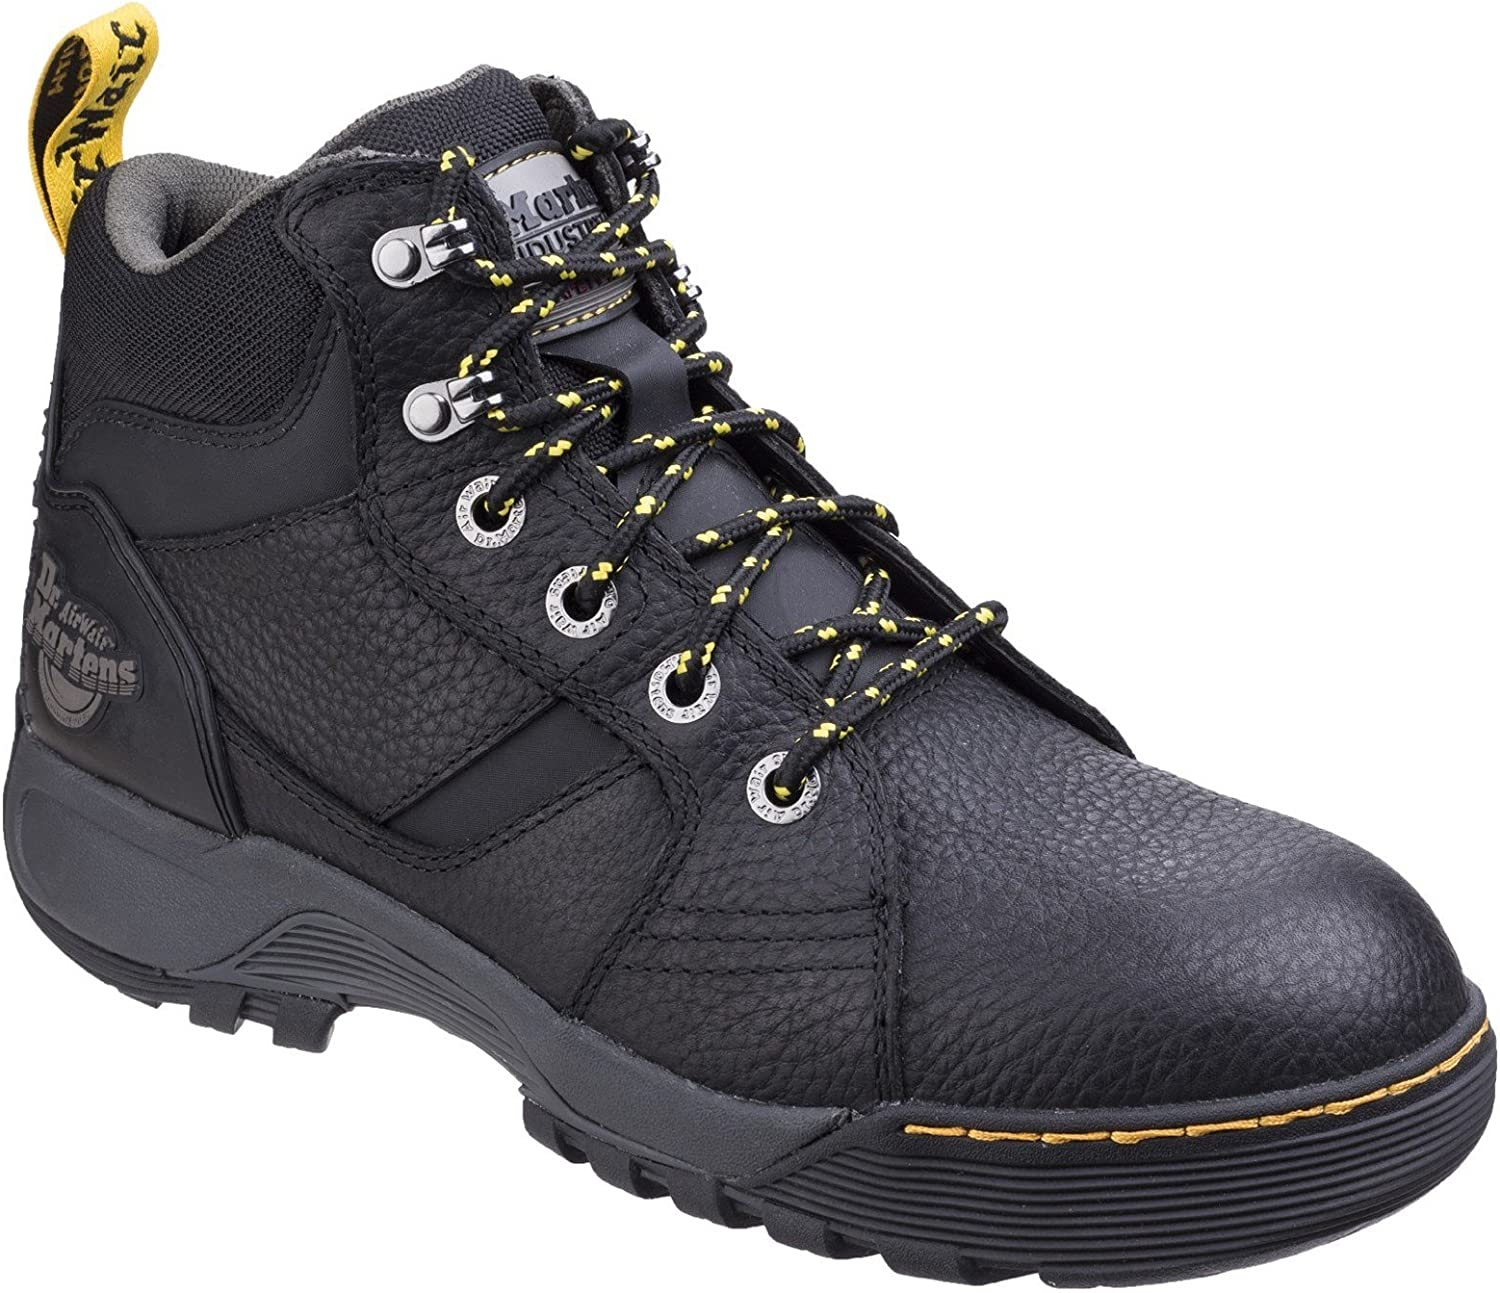 Dr. Martens Mens Grapple Safety Boots